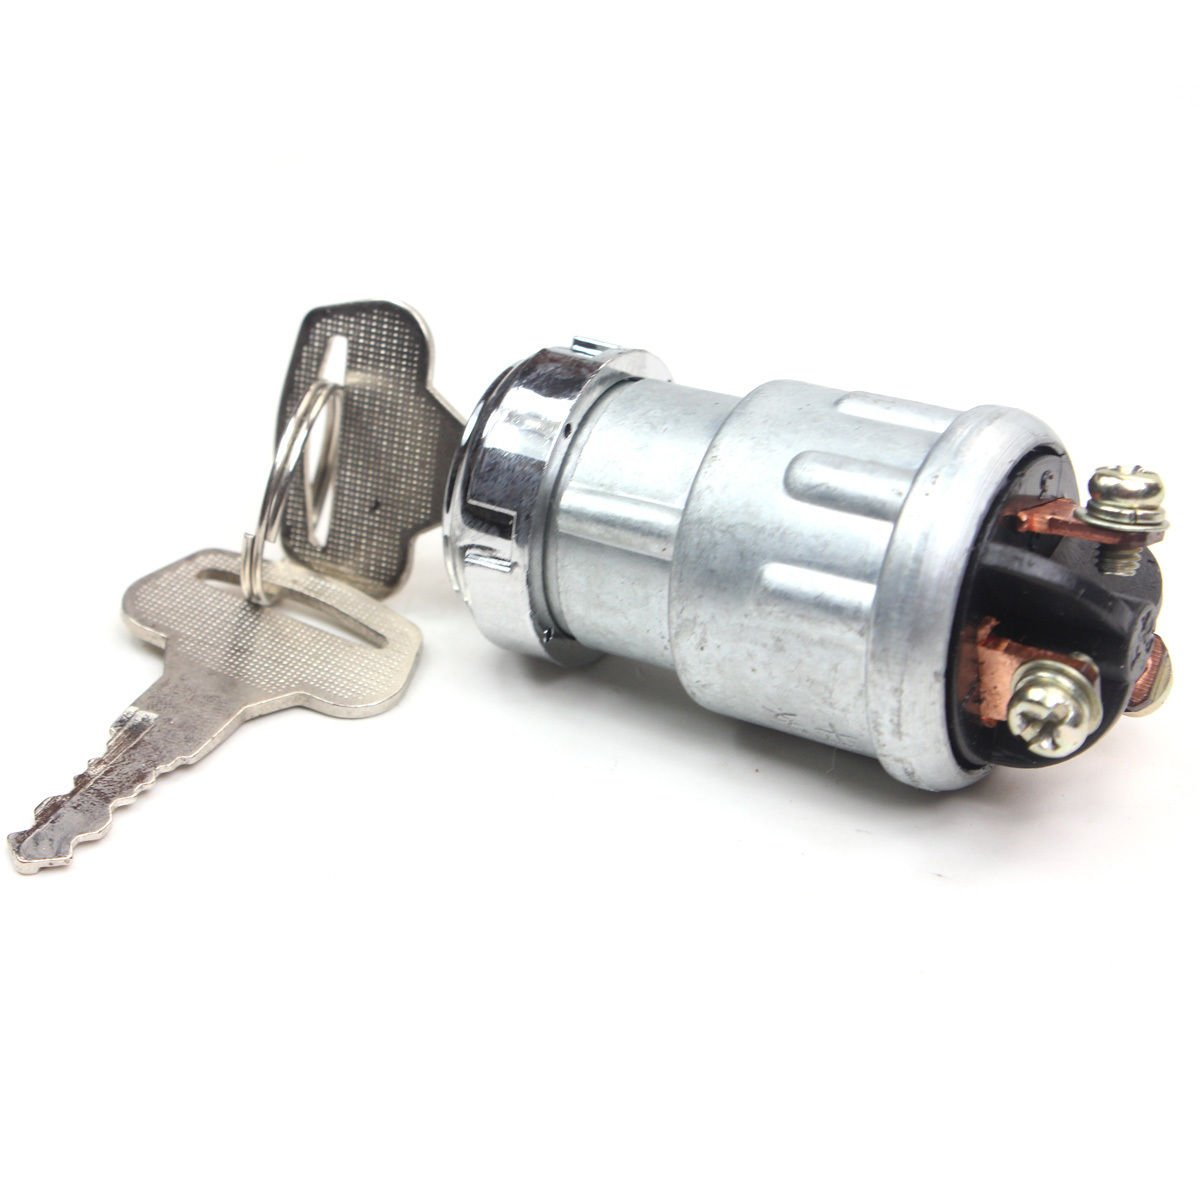 Wingsmoto Key Ignition Switch 70cc 90cc 110cc 125cc 150cc 200cc Wire Diagram 250cc Go Kart Dune Buggy